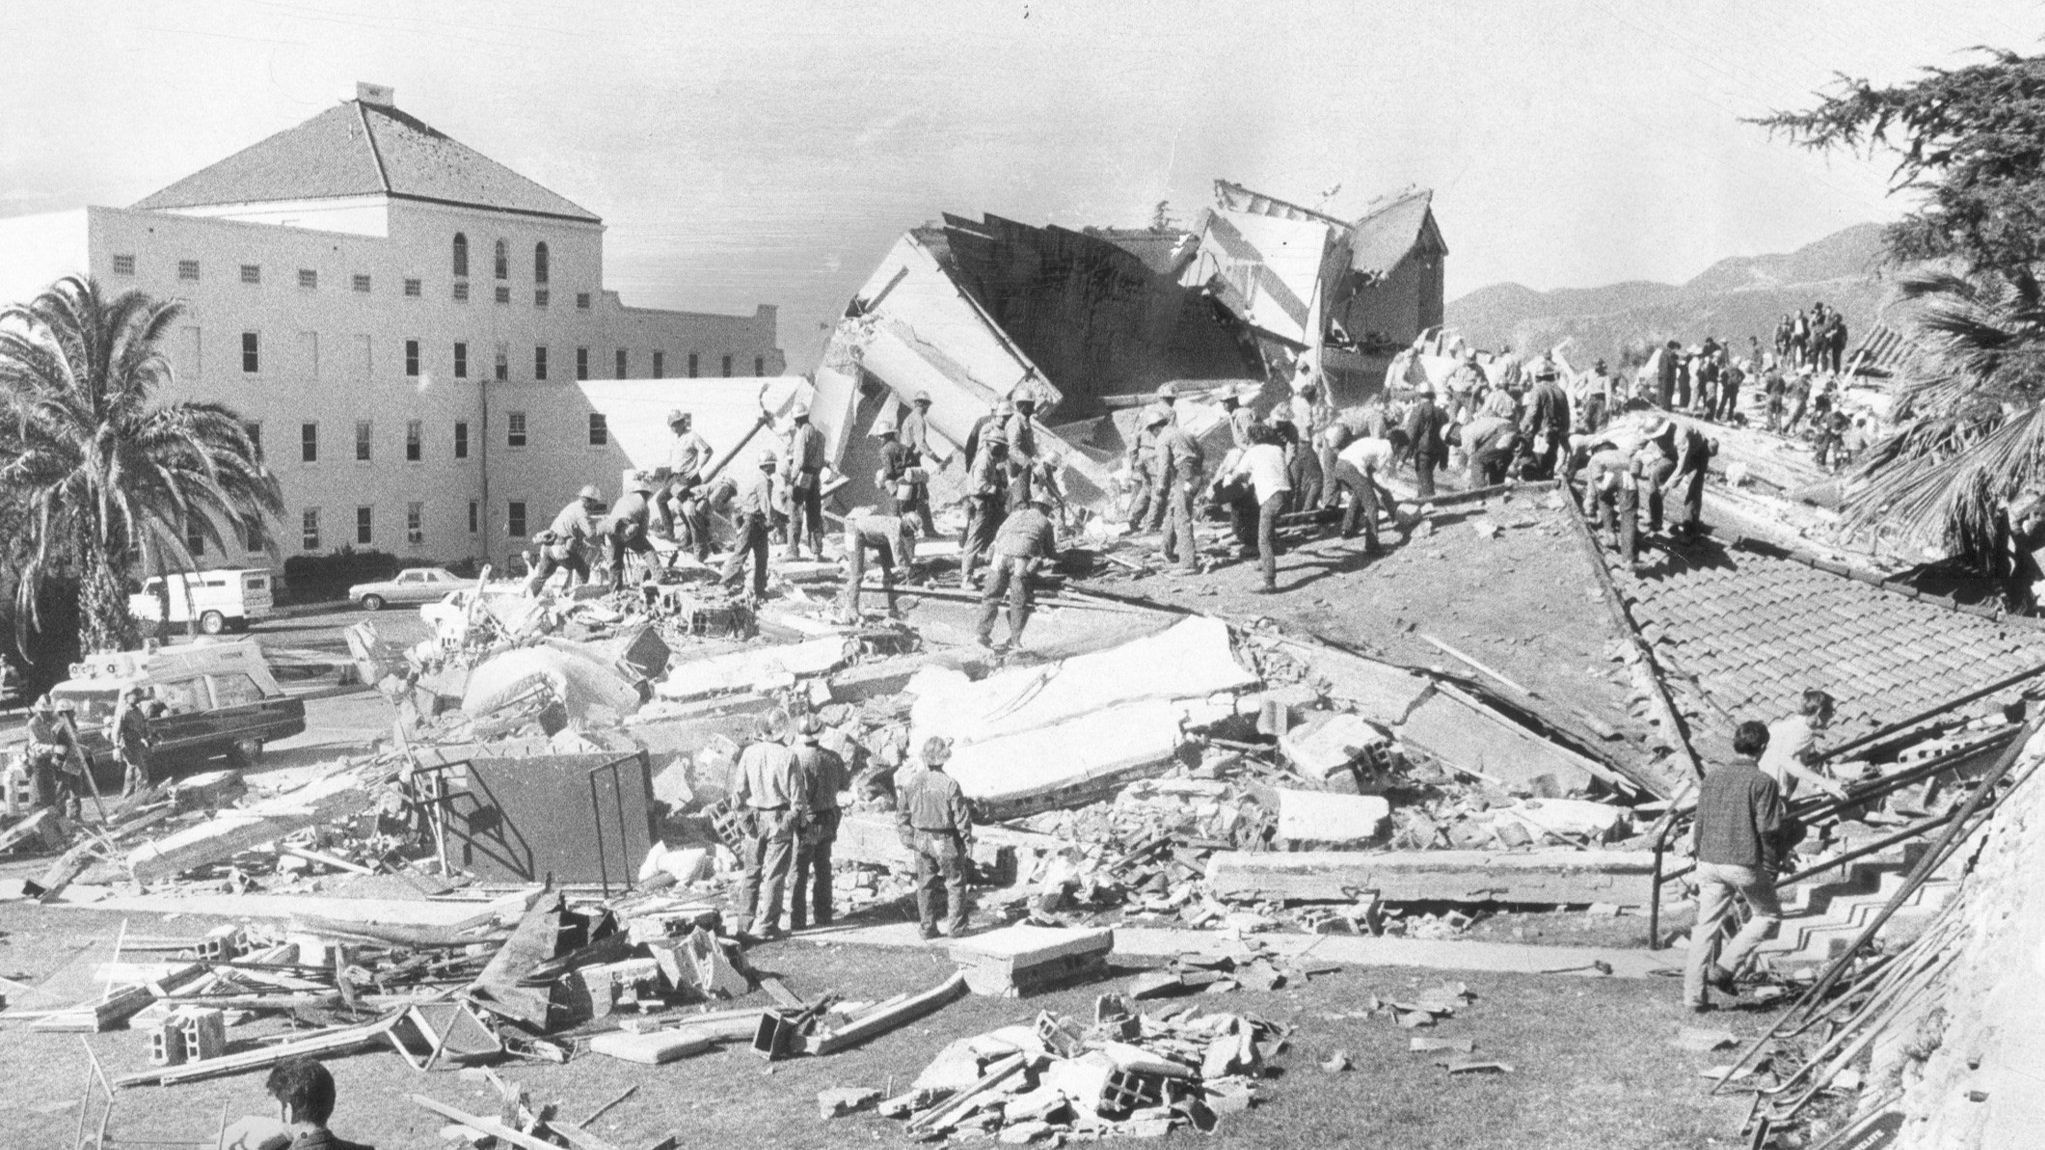 1971 Sylmar earthquake damage